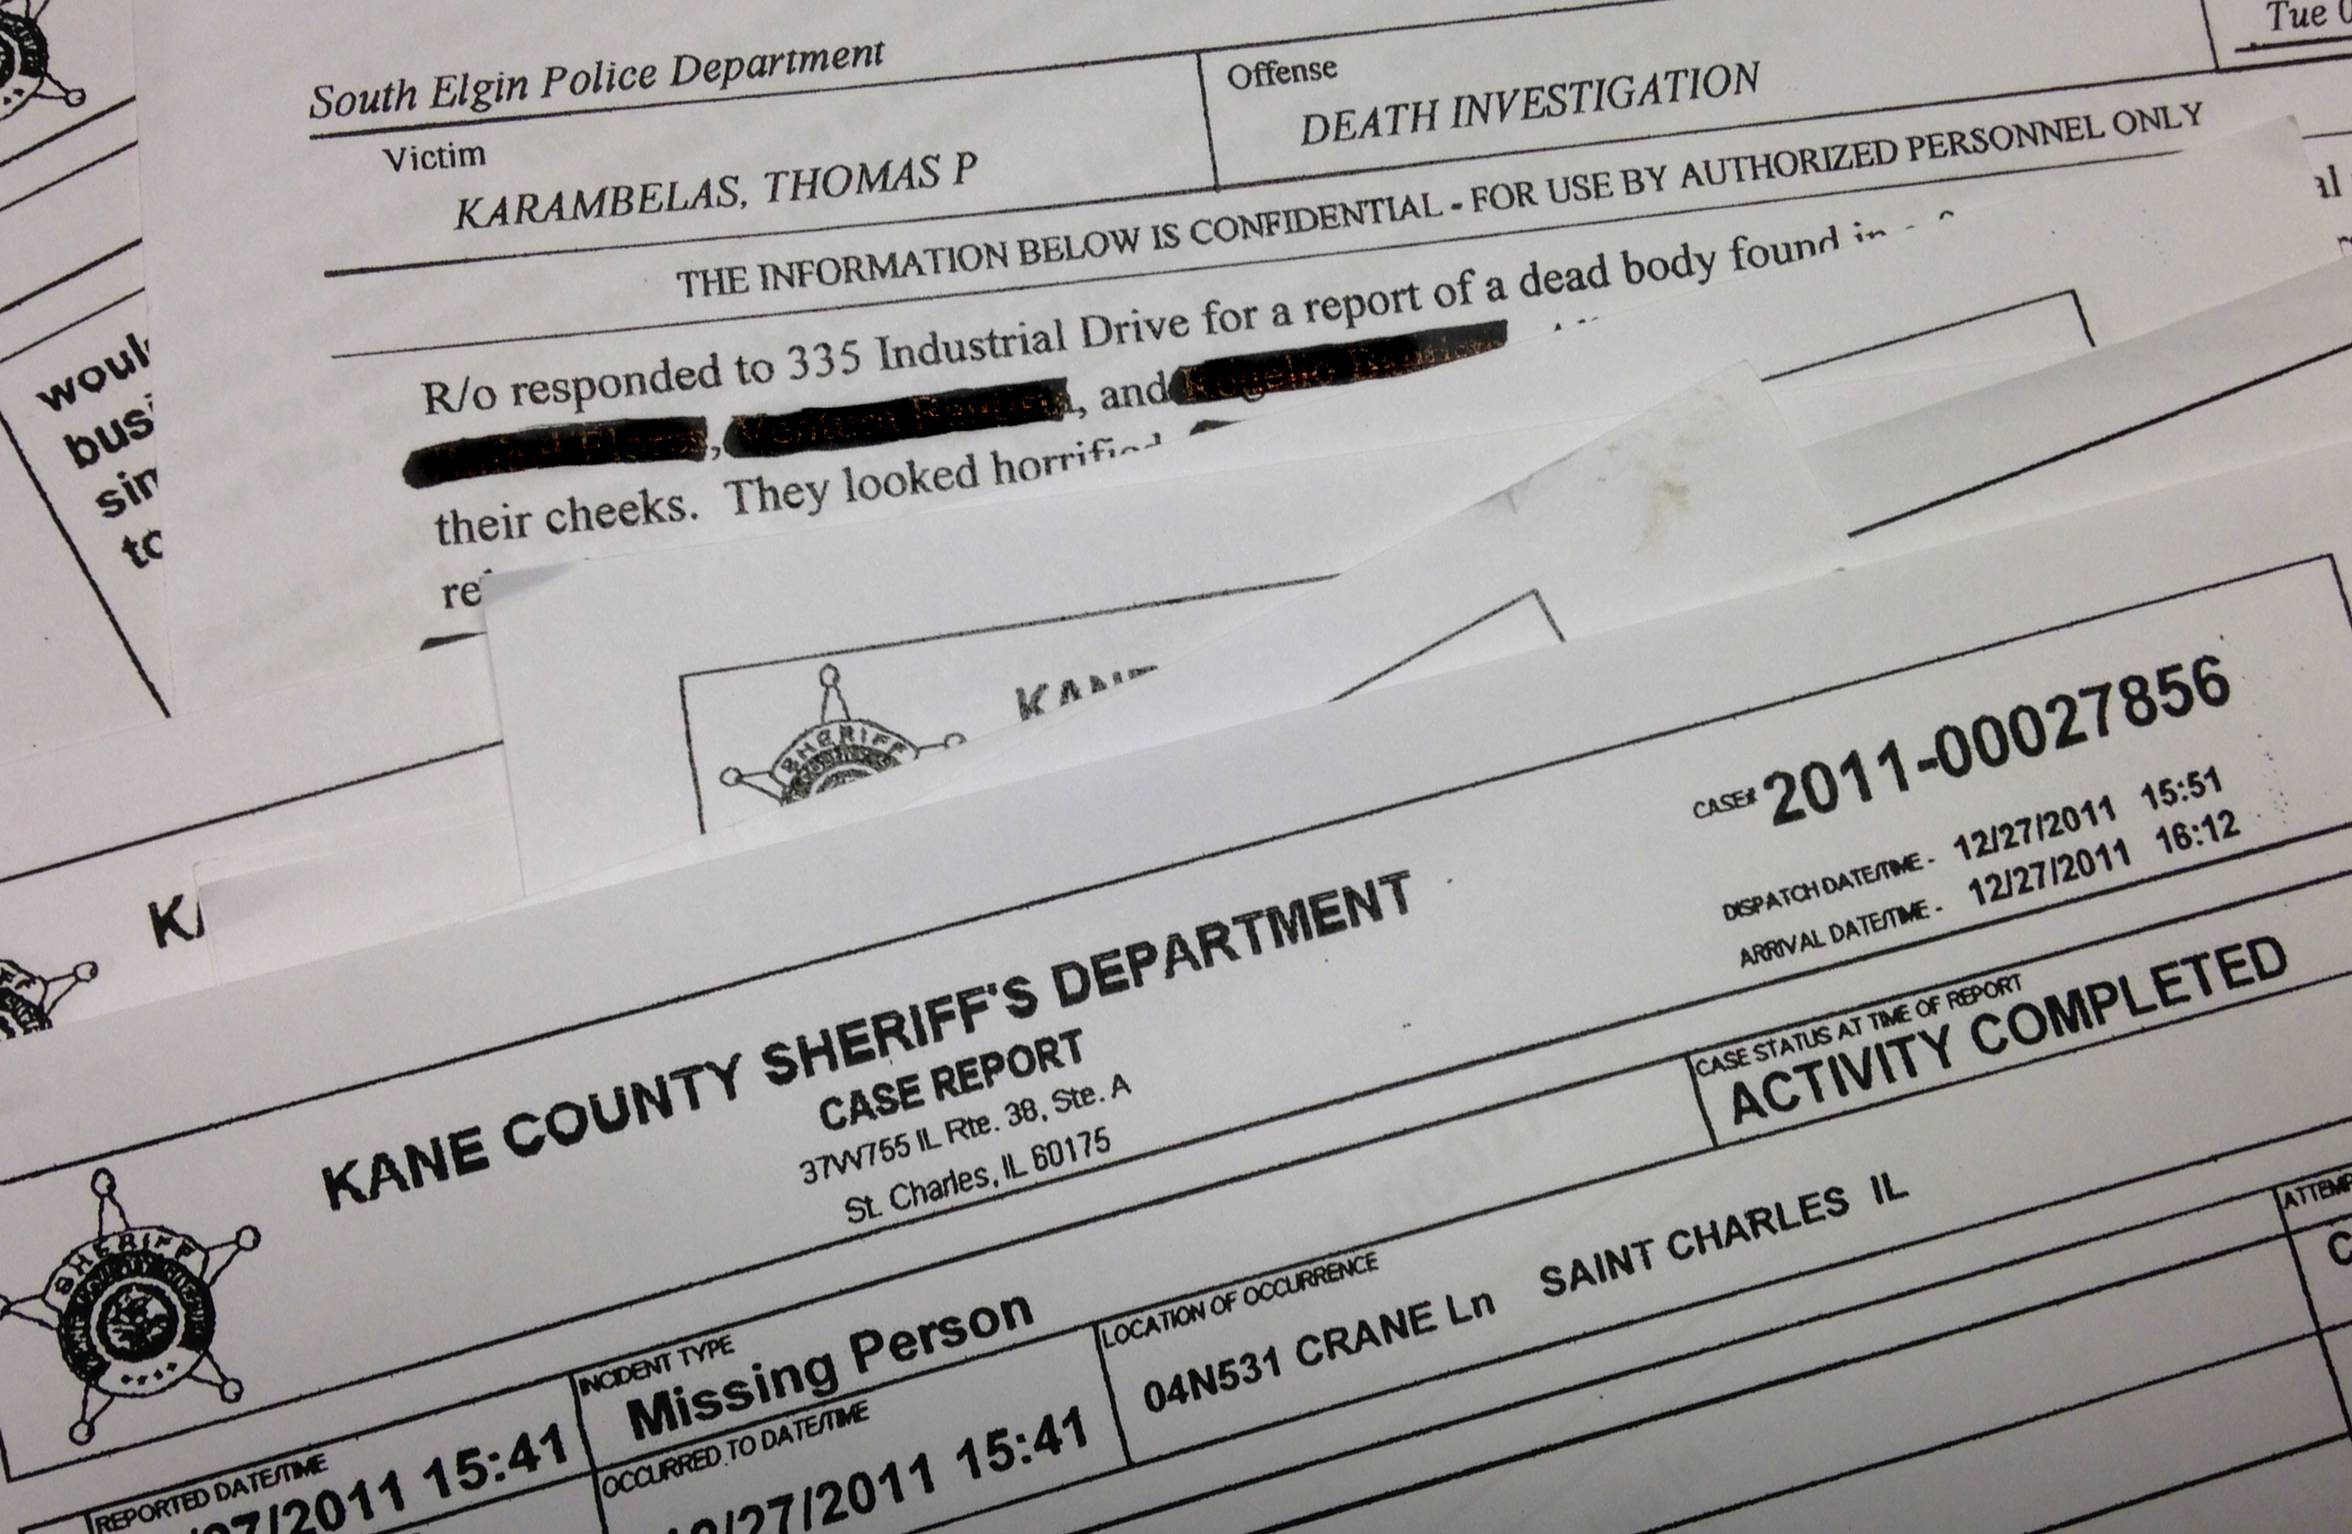 Kane County sheriff's department documents from the Karambelas case.